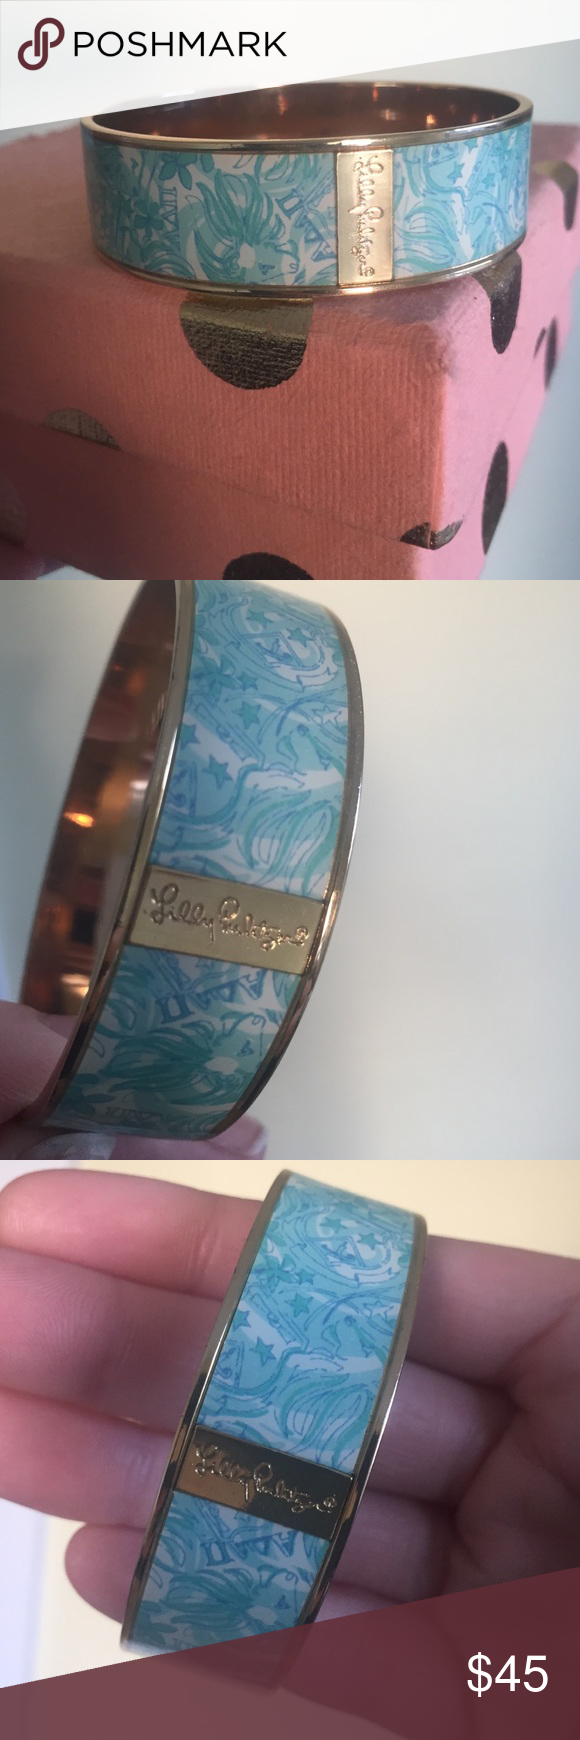 Lilly Pulitzer ADPi bangle SOLD OUT on the Lilly website! Lilly Pulitzer bangle w/ gold on the inside and Alpha Delta Pi print on the outside. I've never worn this but it was passed down to me from one other sister, and there are a couple tiny scratches on the inside gold part. Nothing noticeable or major, just thought I'd mention it. Lilly Pulitzer Jewelry Bracelets